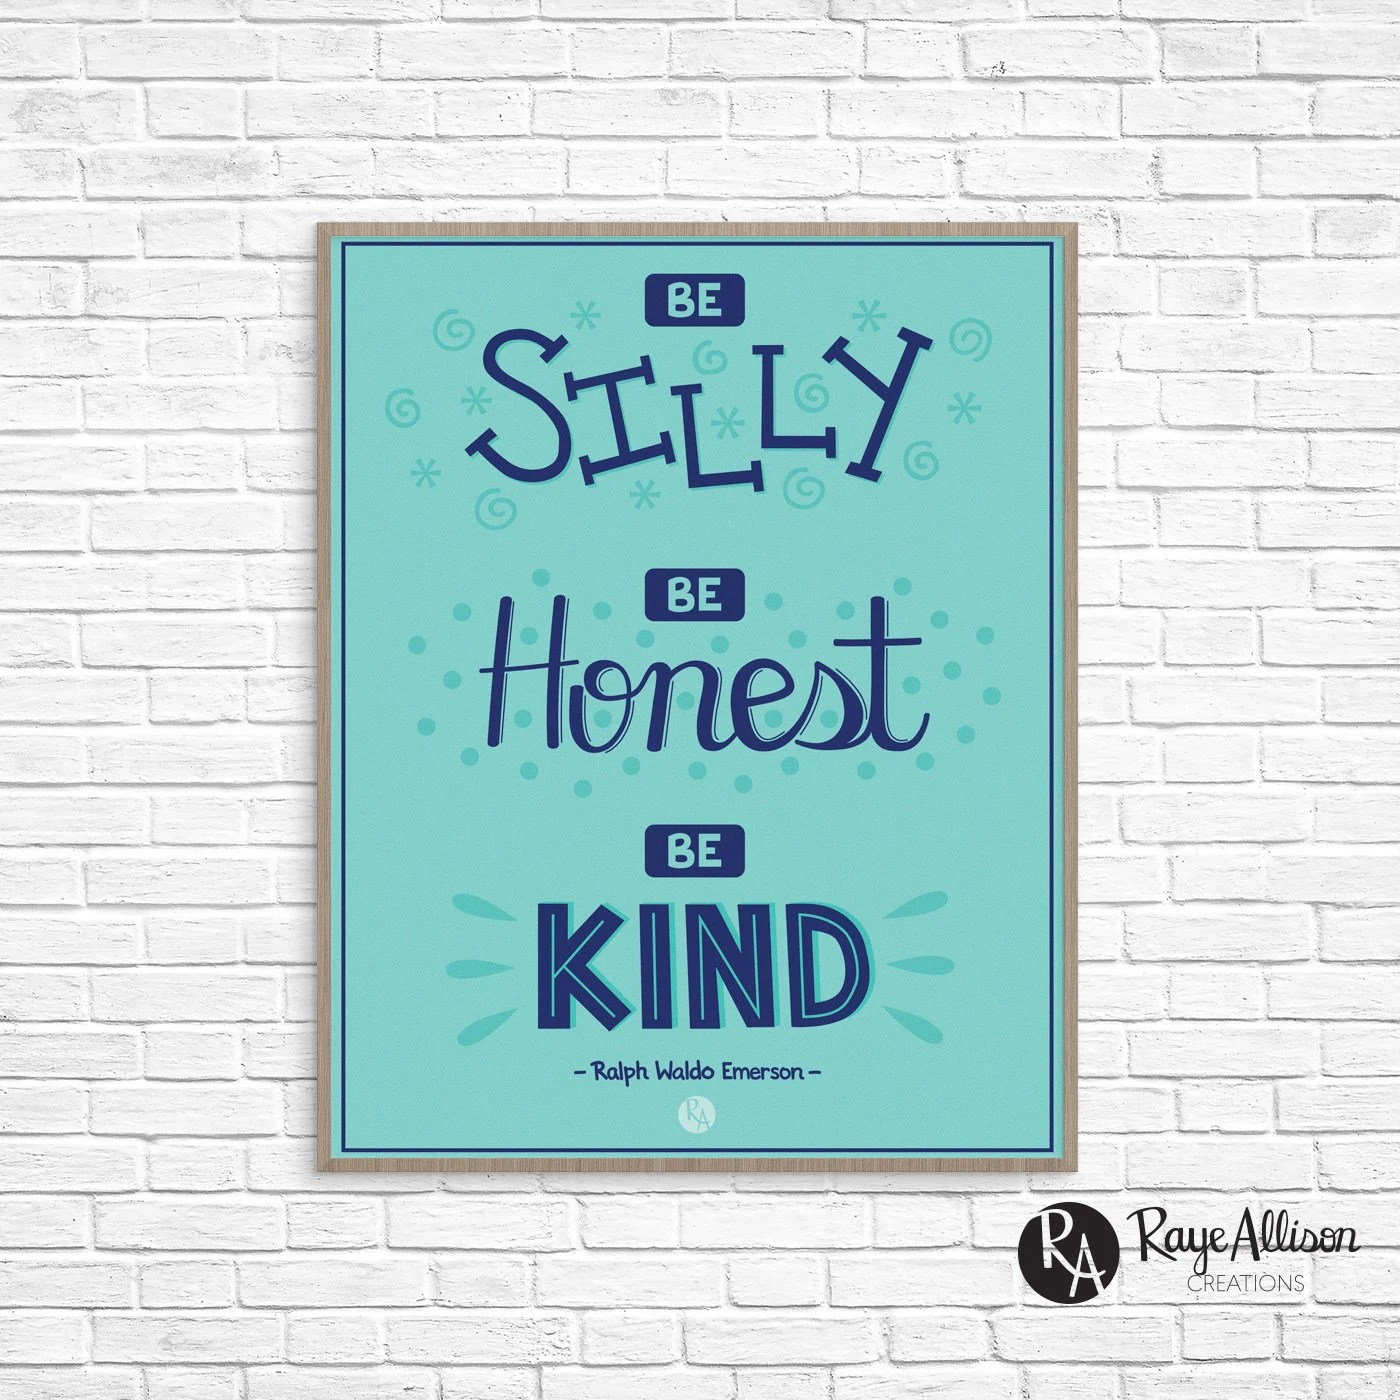 Be Silly Be Honest Be Kind Ralph Waldo Emerson Quote